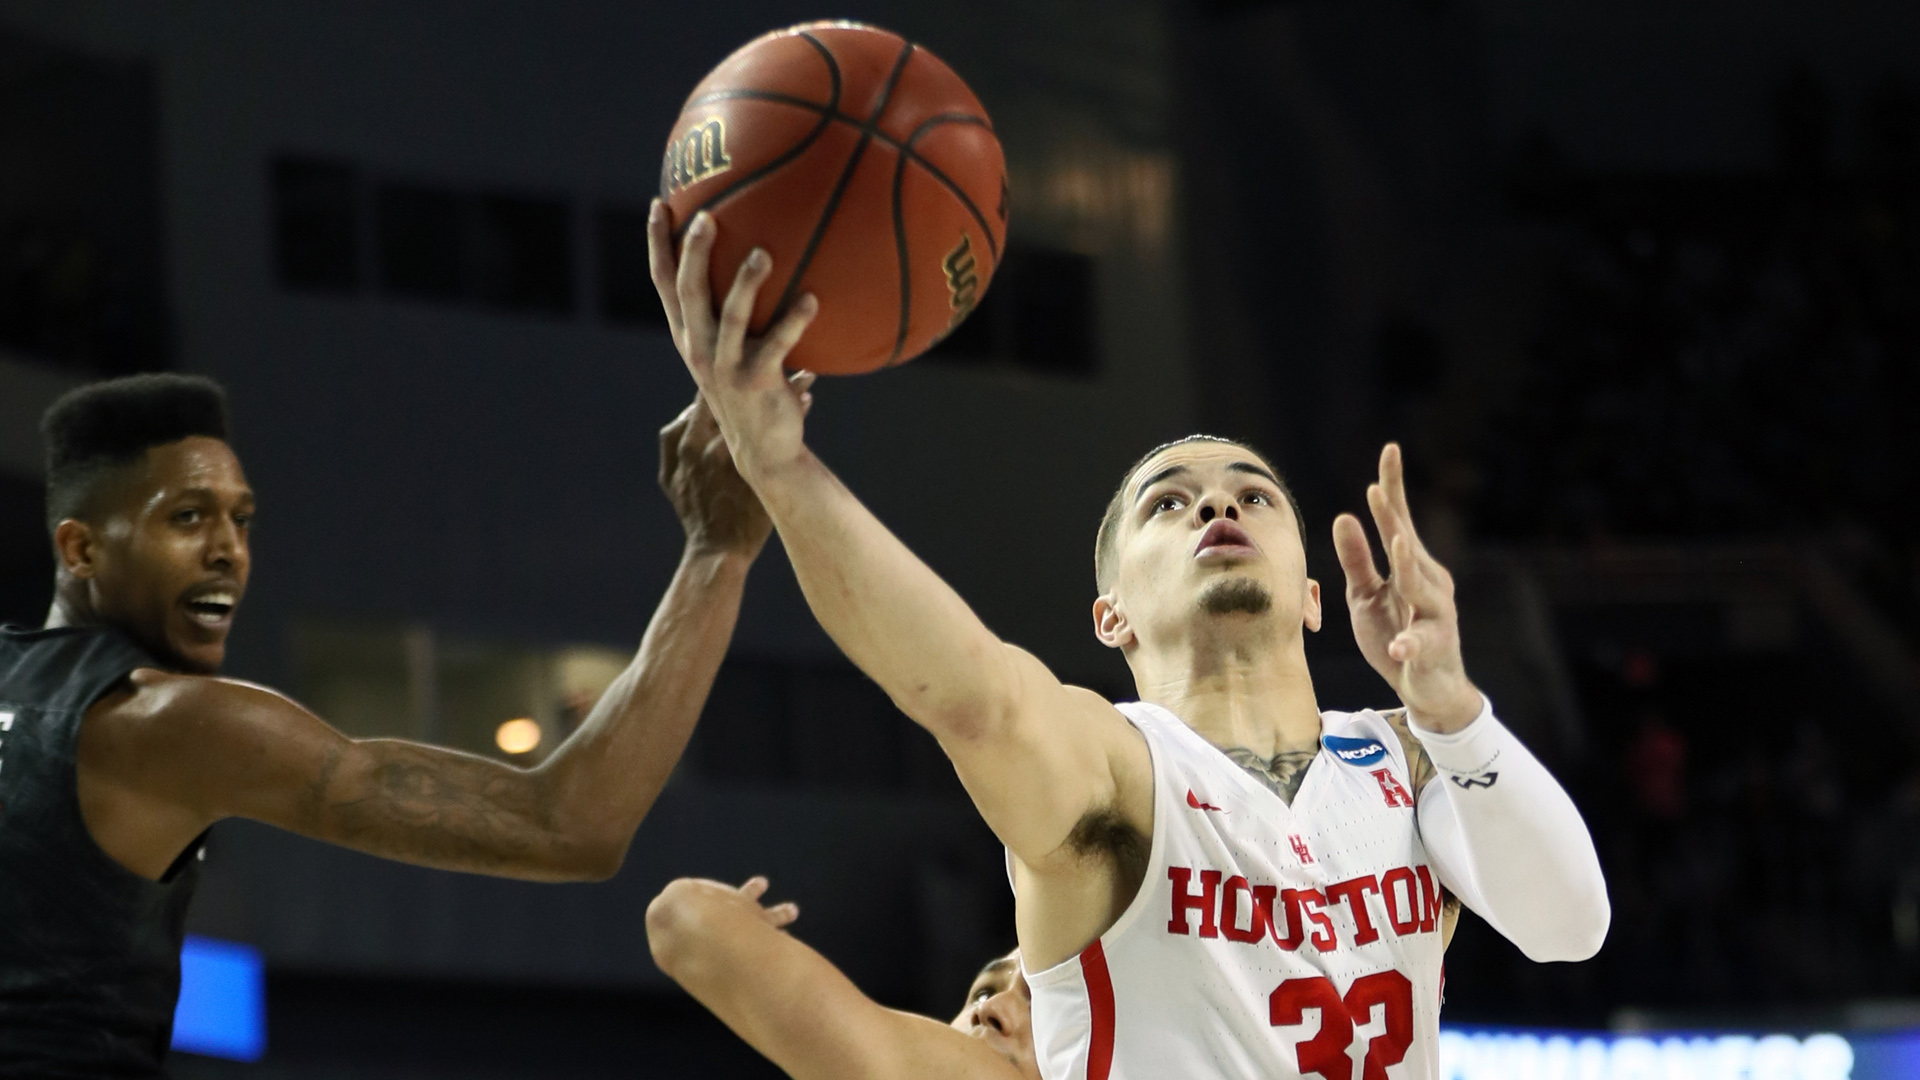 March Madness Recap: San Diego State vs. Houston Betting Odds